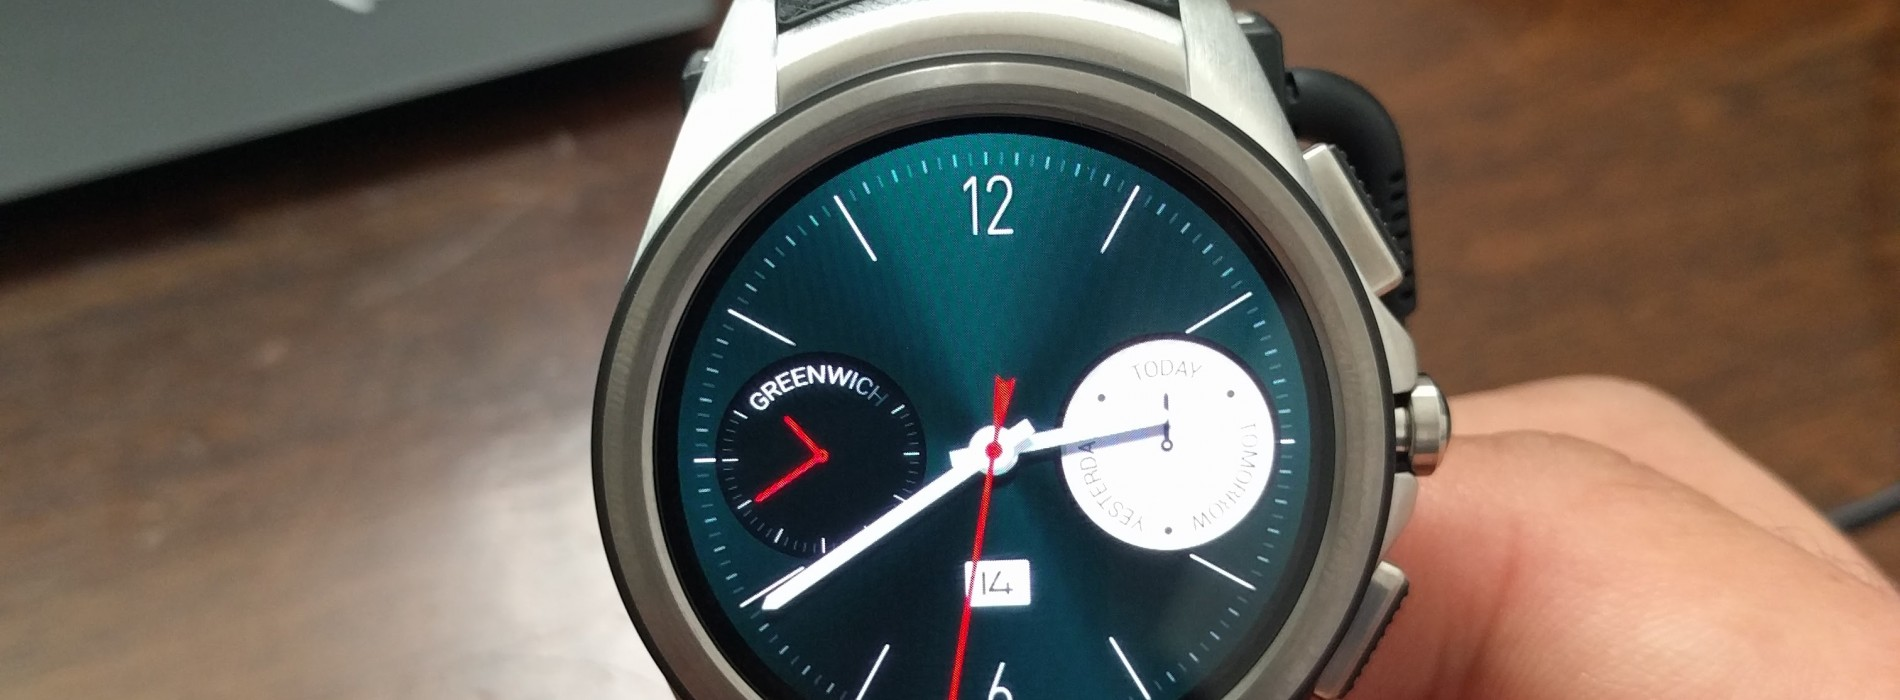 LG Urbane Watch 2nd Edition first look: This is the best ...